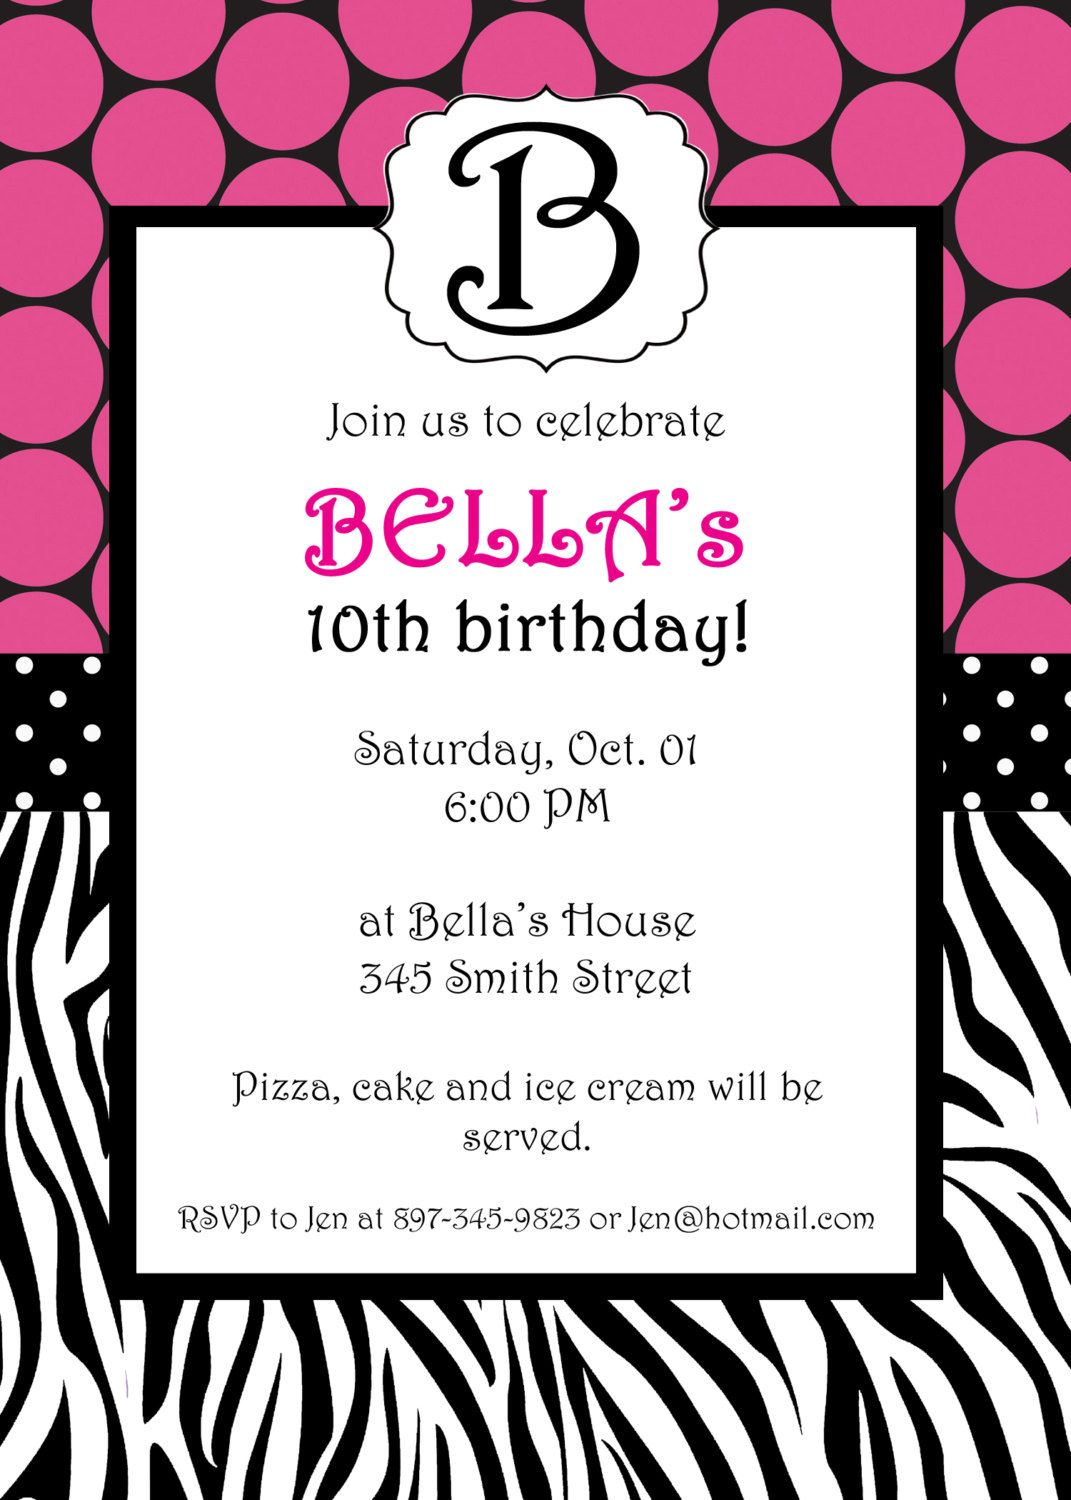 Free Printable Zebra Print Invitations Baby Shower | Emma - Free Printable Zebra Print Birthday Invitations